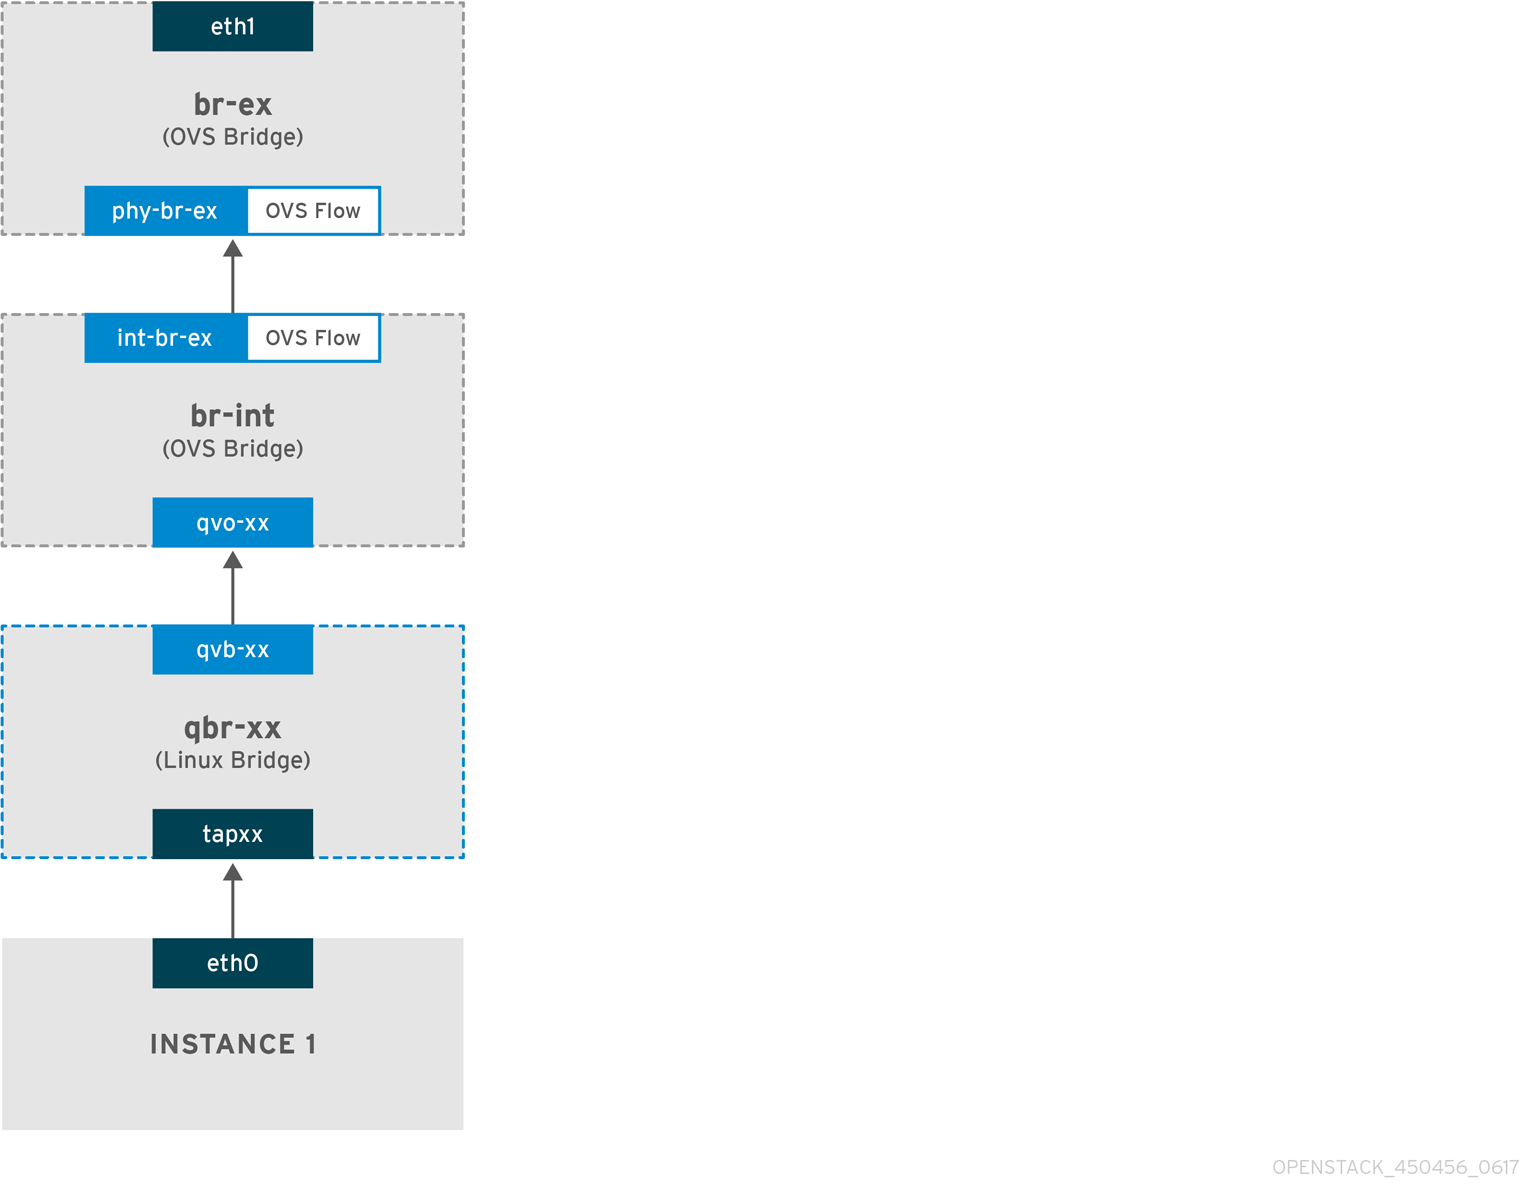 Network packet flow - outgoing